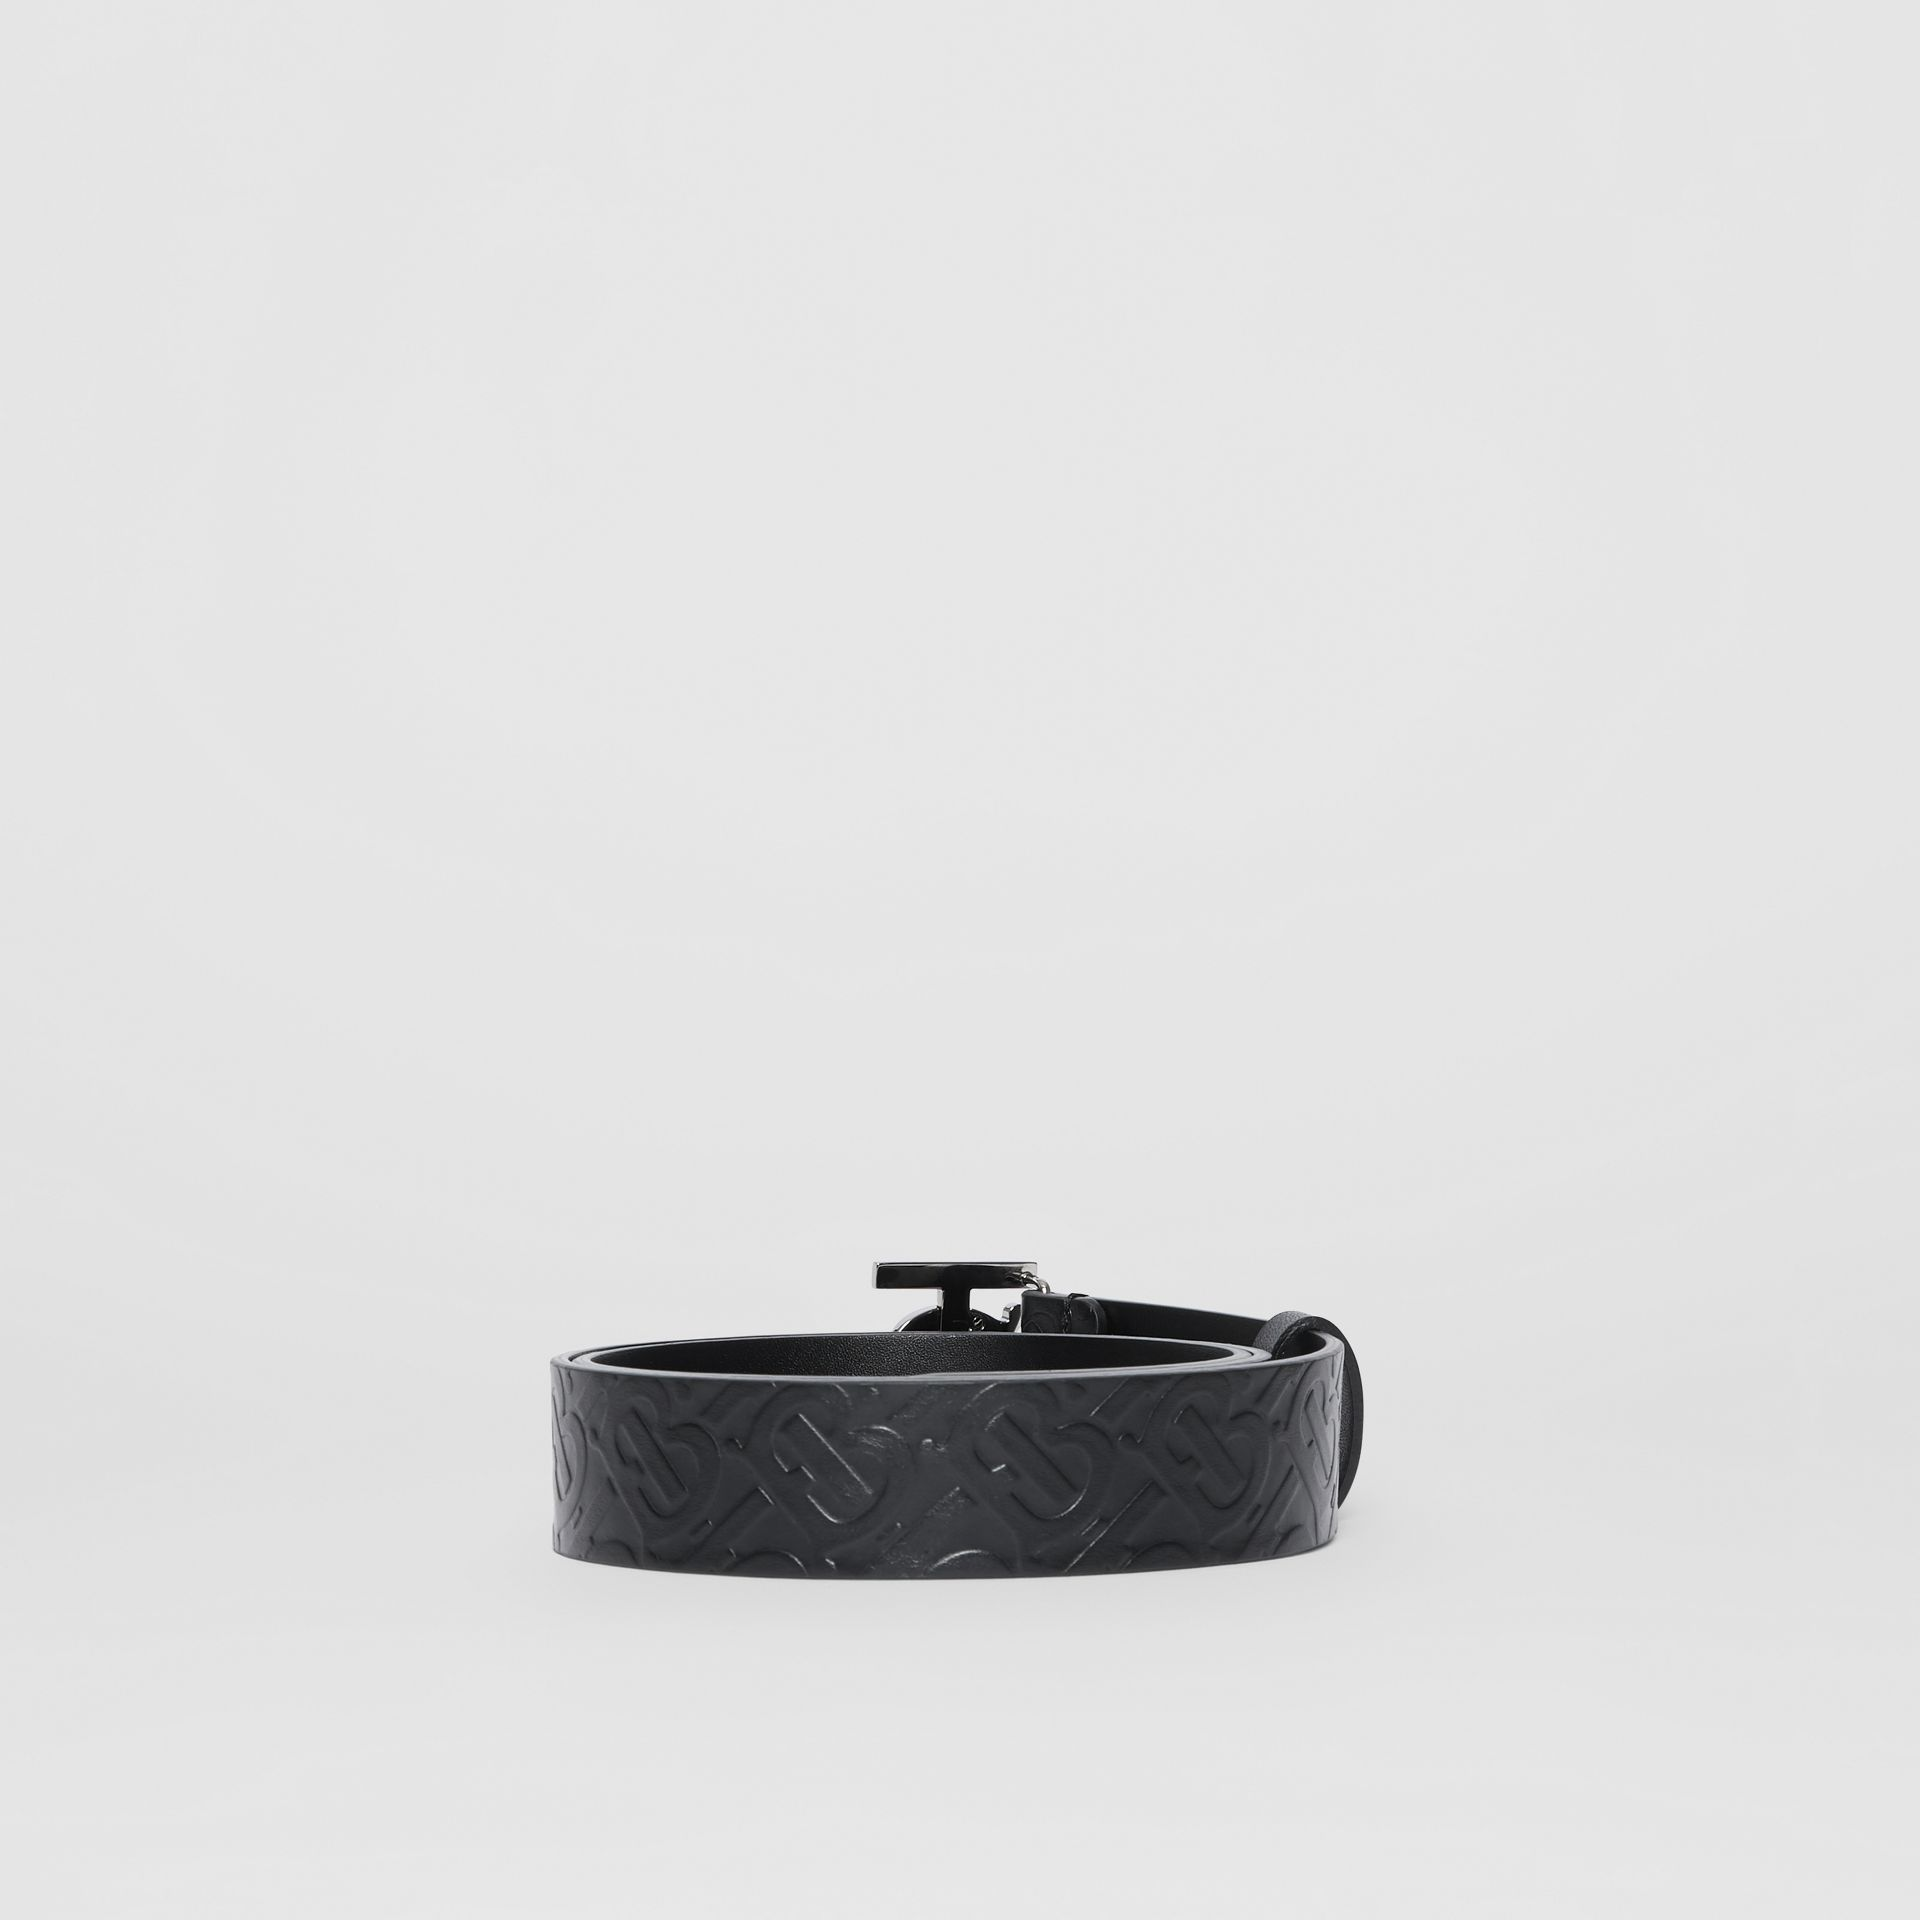 Monogram Motif Monogram Leather Belt in Black - Men | Burberry Canada - gallery image 4